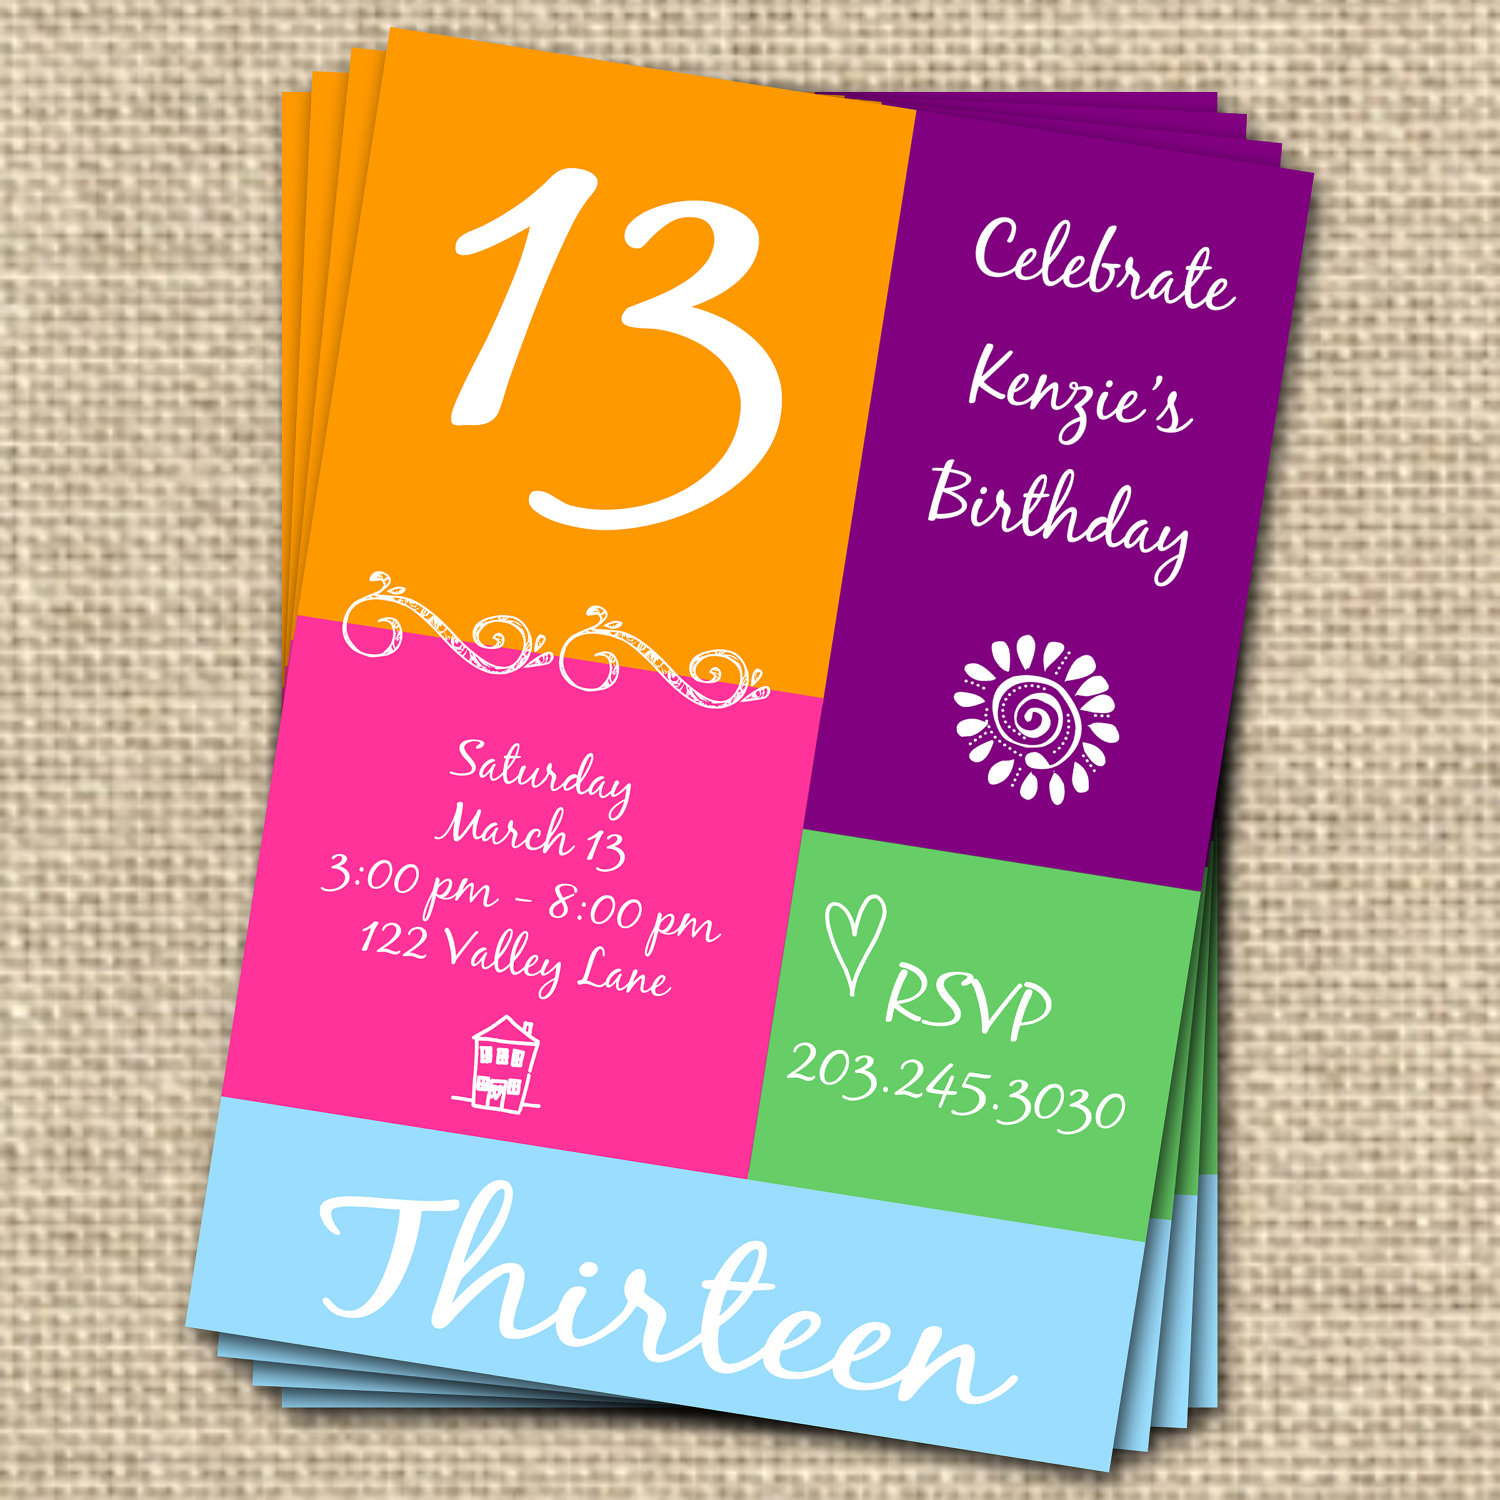 13th birthday invitations ; 13Th-Birthday-Party-Invitations-Templates-to-get-ideas-how-to-make-your-own-birthday-Invitation-design-1